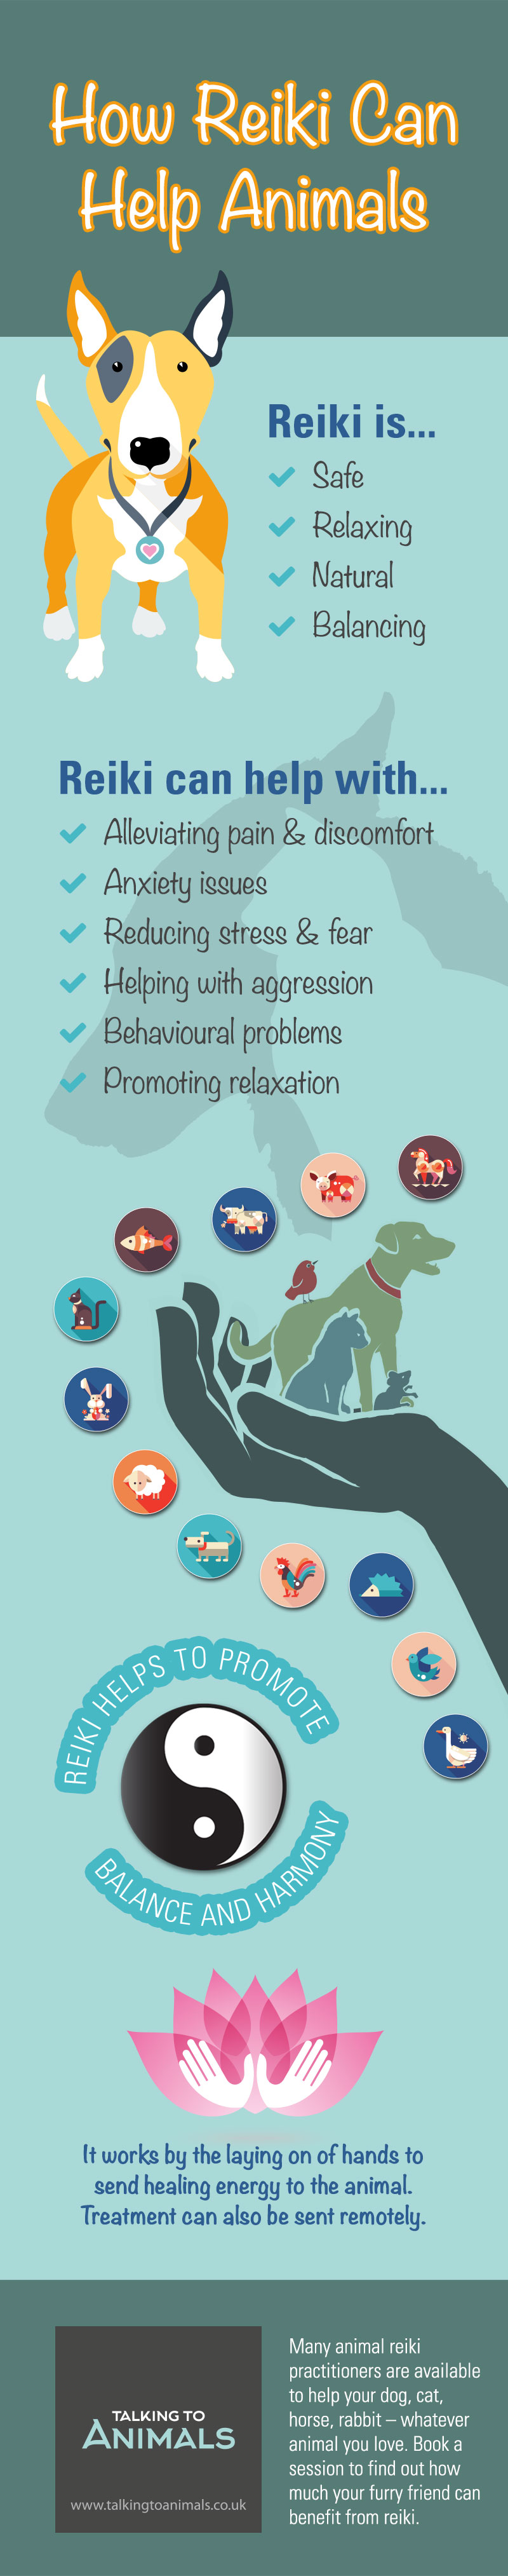 Reiki energy healing for animals infographic